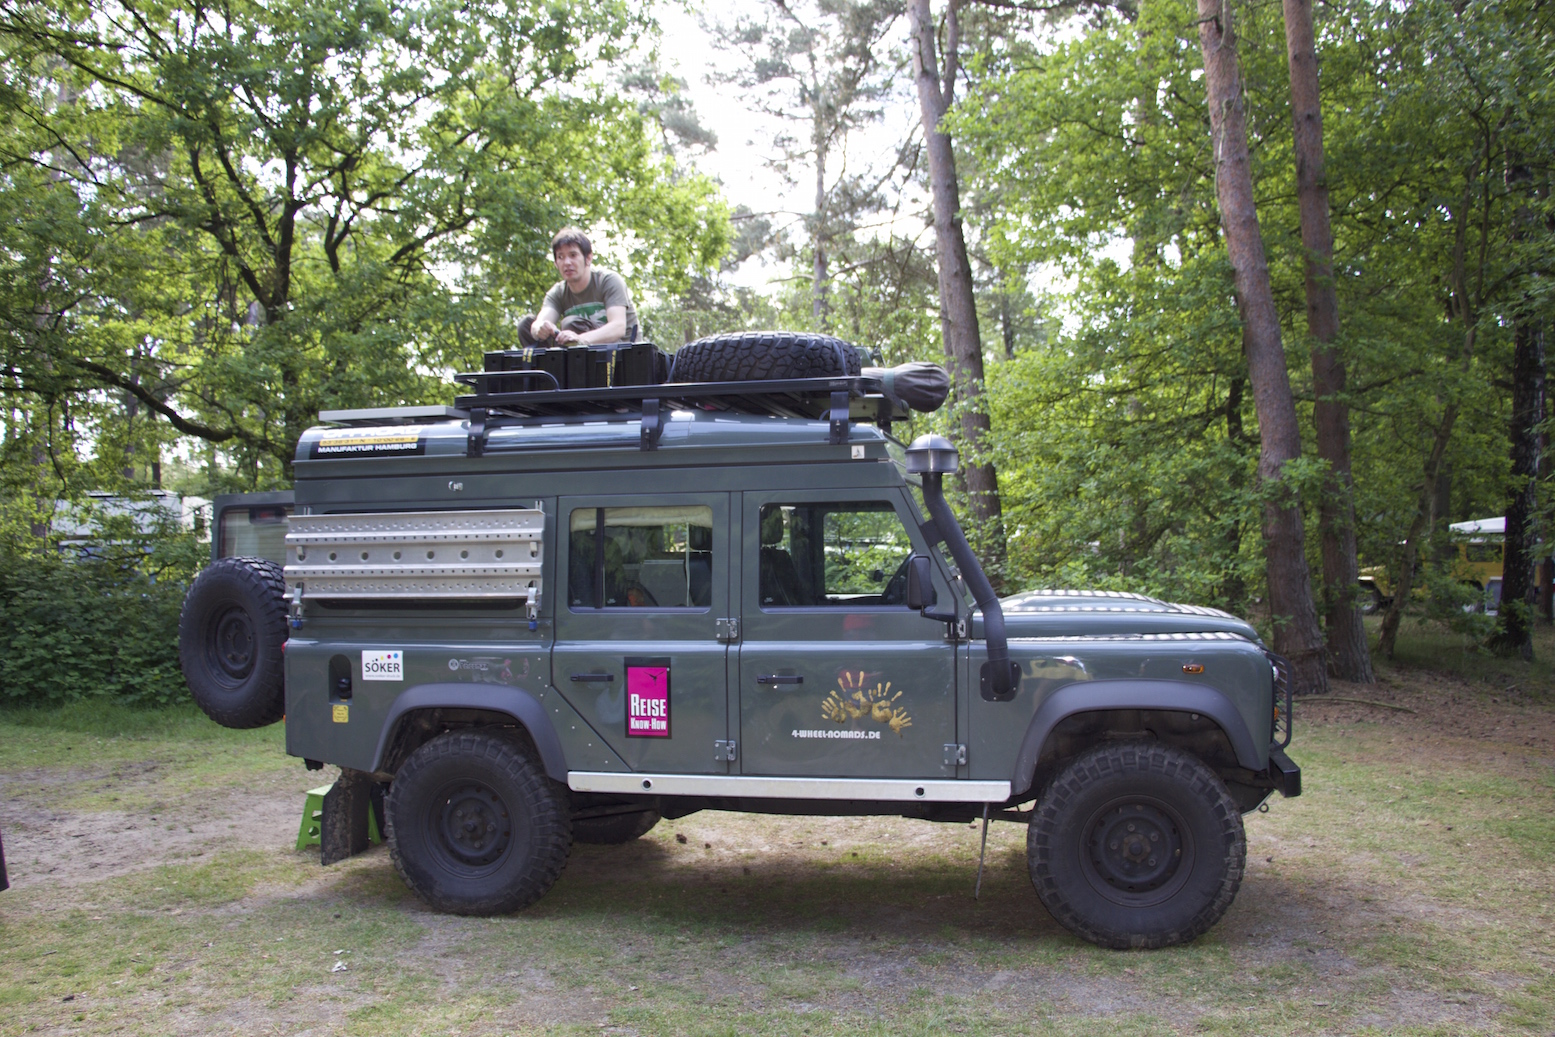 The most important decision was to go for a wedge shaped pop top roof. You might say that roof tents fit the Land Roveru0027s expedition image better ... & Featured Vehicle: 4-wheel-nomadsu0027 Land Rover Defender u2013 Expedition ...